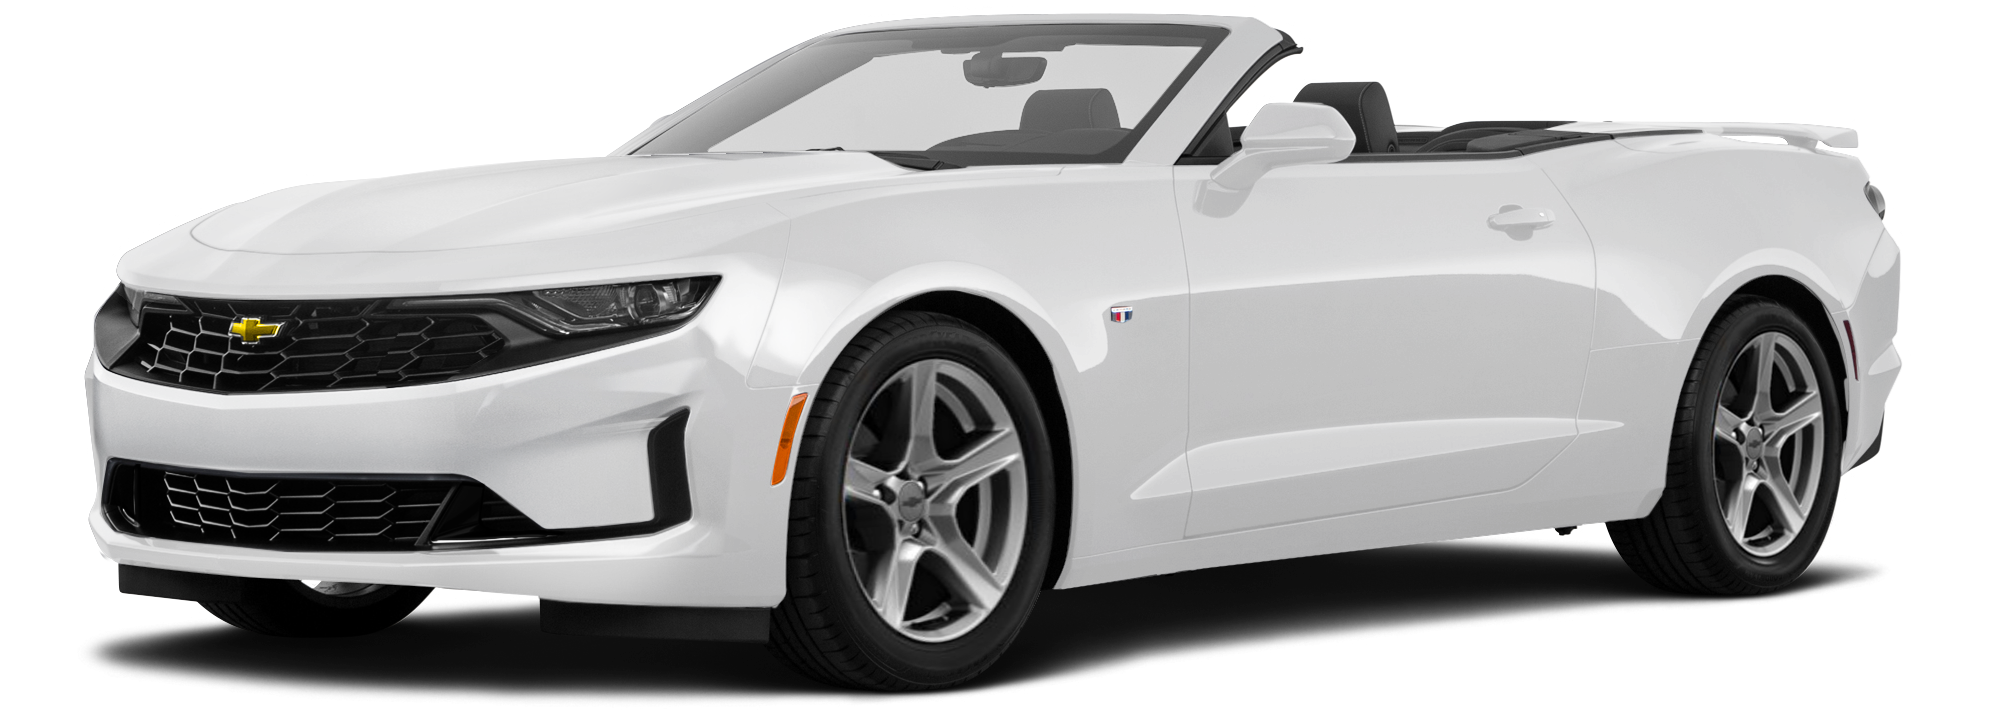 Chevy Dealer Springfield Mo >> 2019 Chevrolet Camaro Incentives, Specials & Offers in Springfield MO